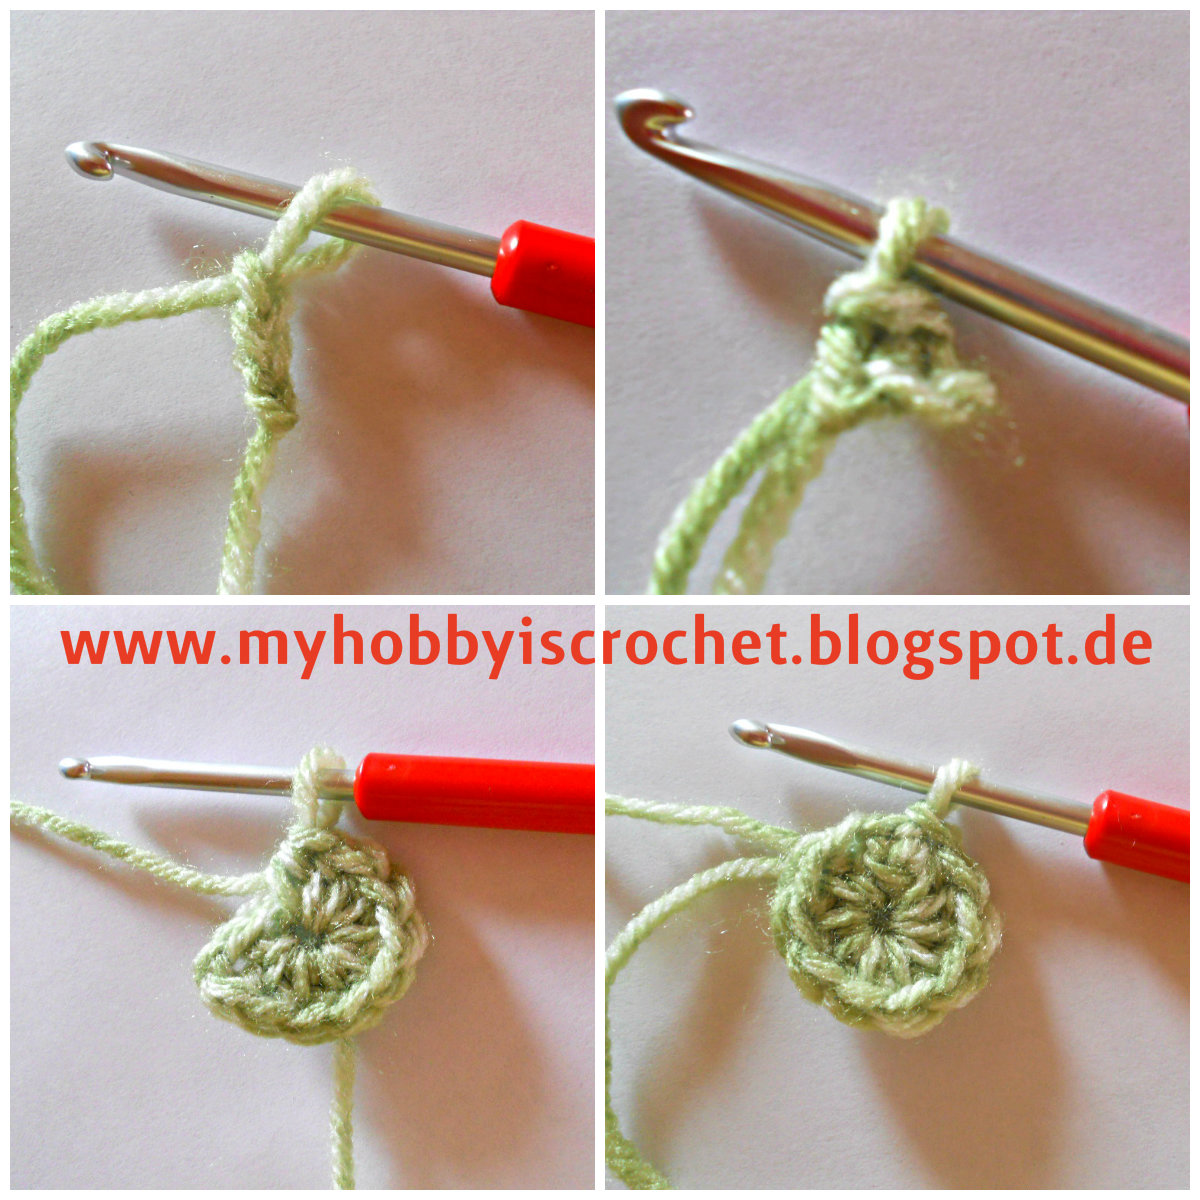 My Hobby Is Crochet: Crochet Dahlia Flower - Free Pattern with Step ...